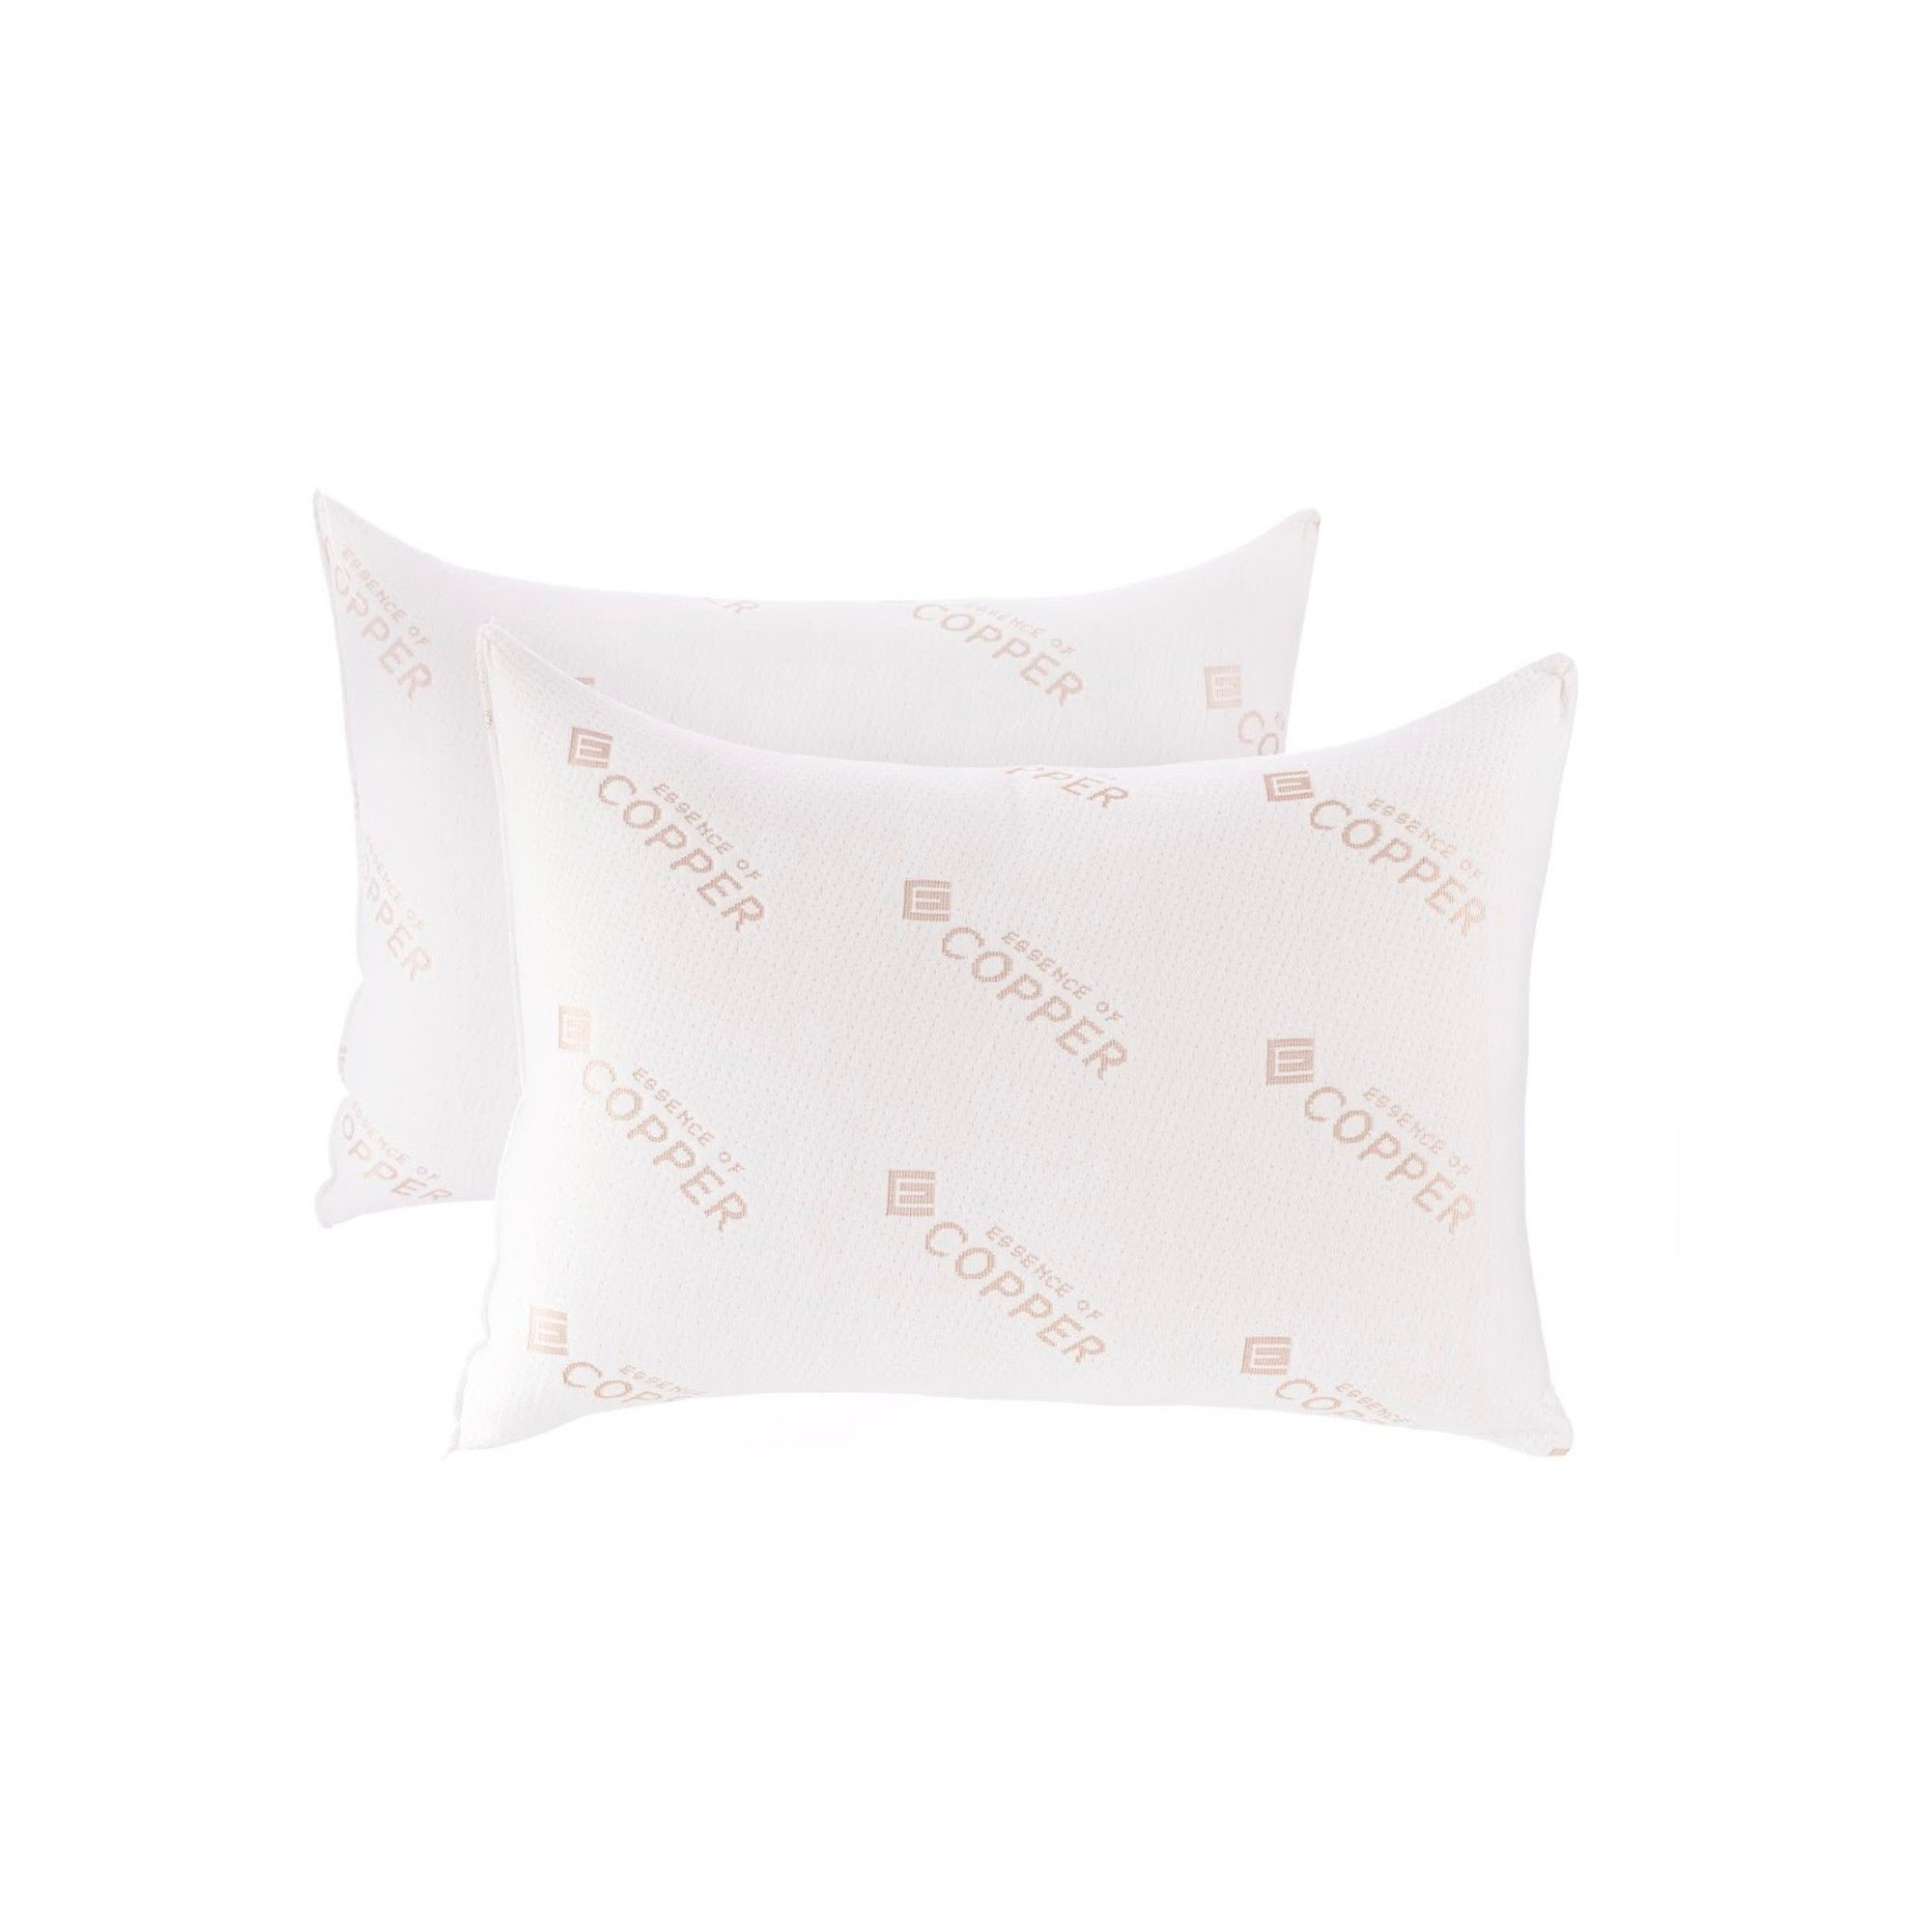 memory original dsc pillowcase shaping reviews baby bamboo products foam pillow for the head